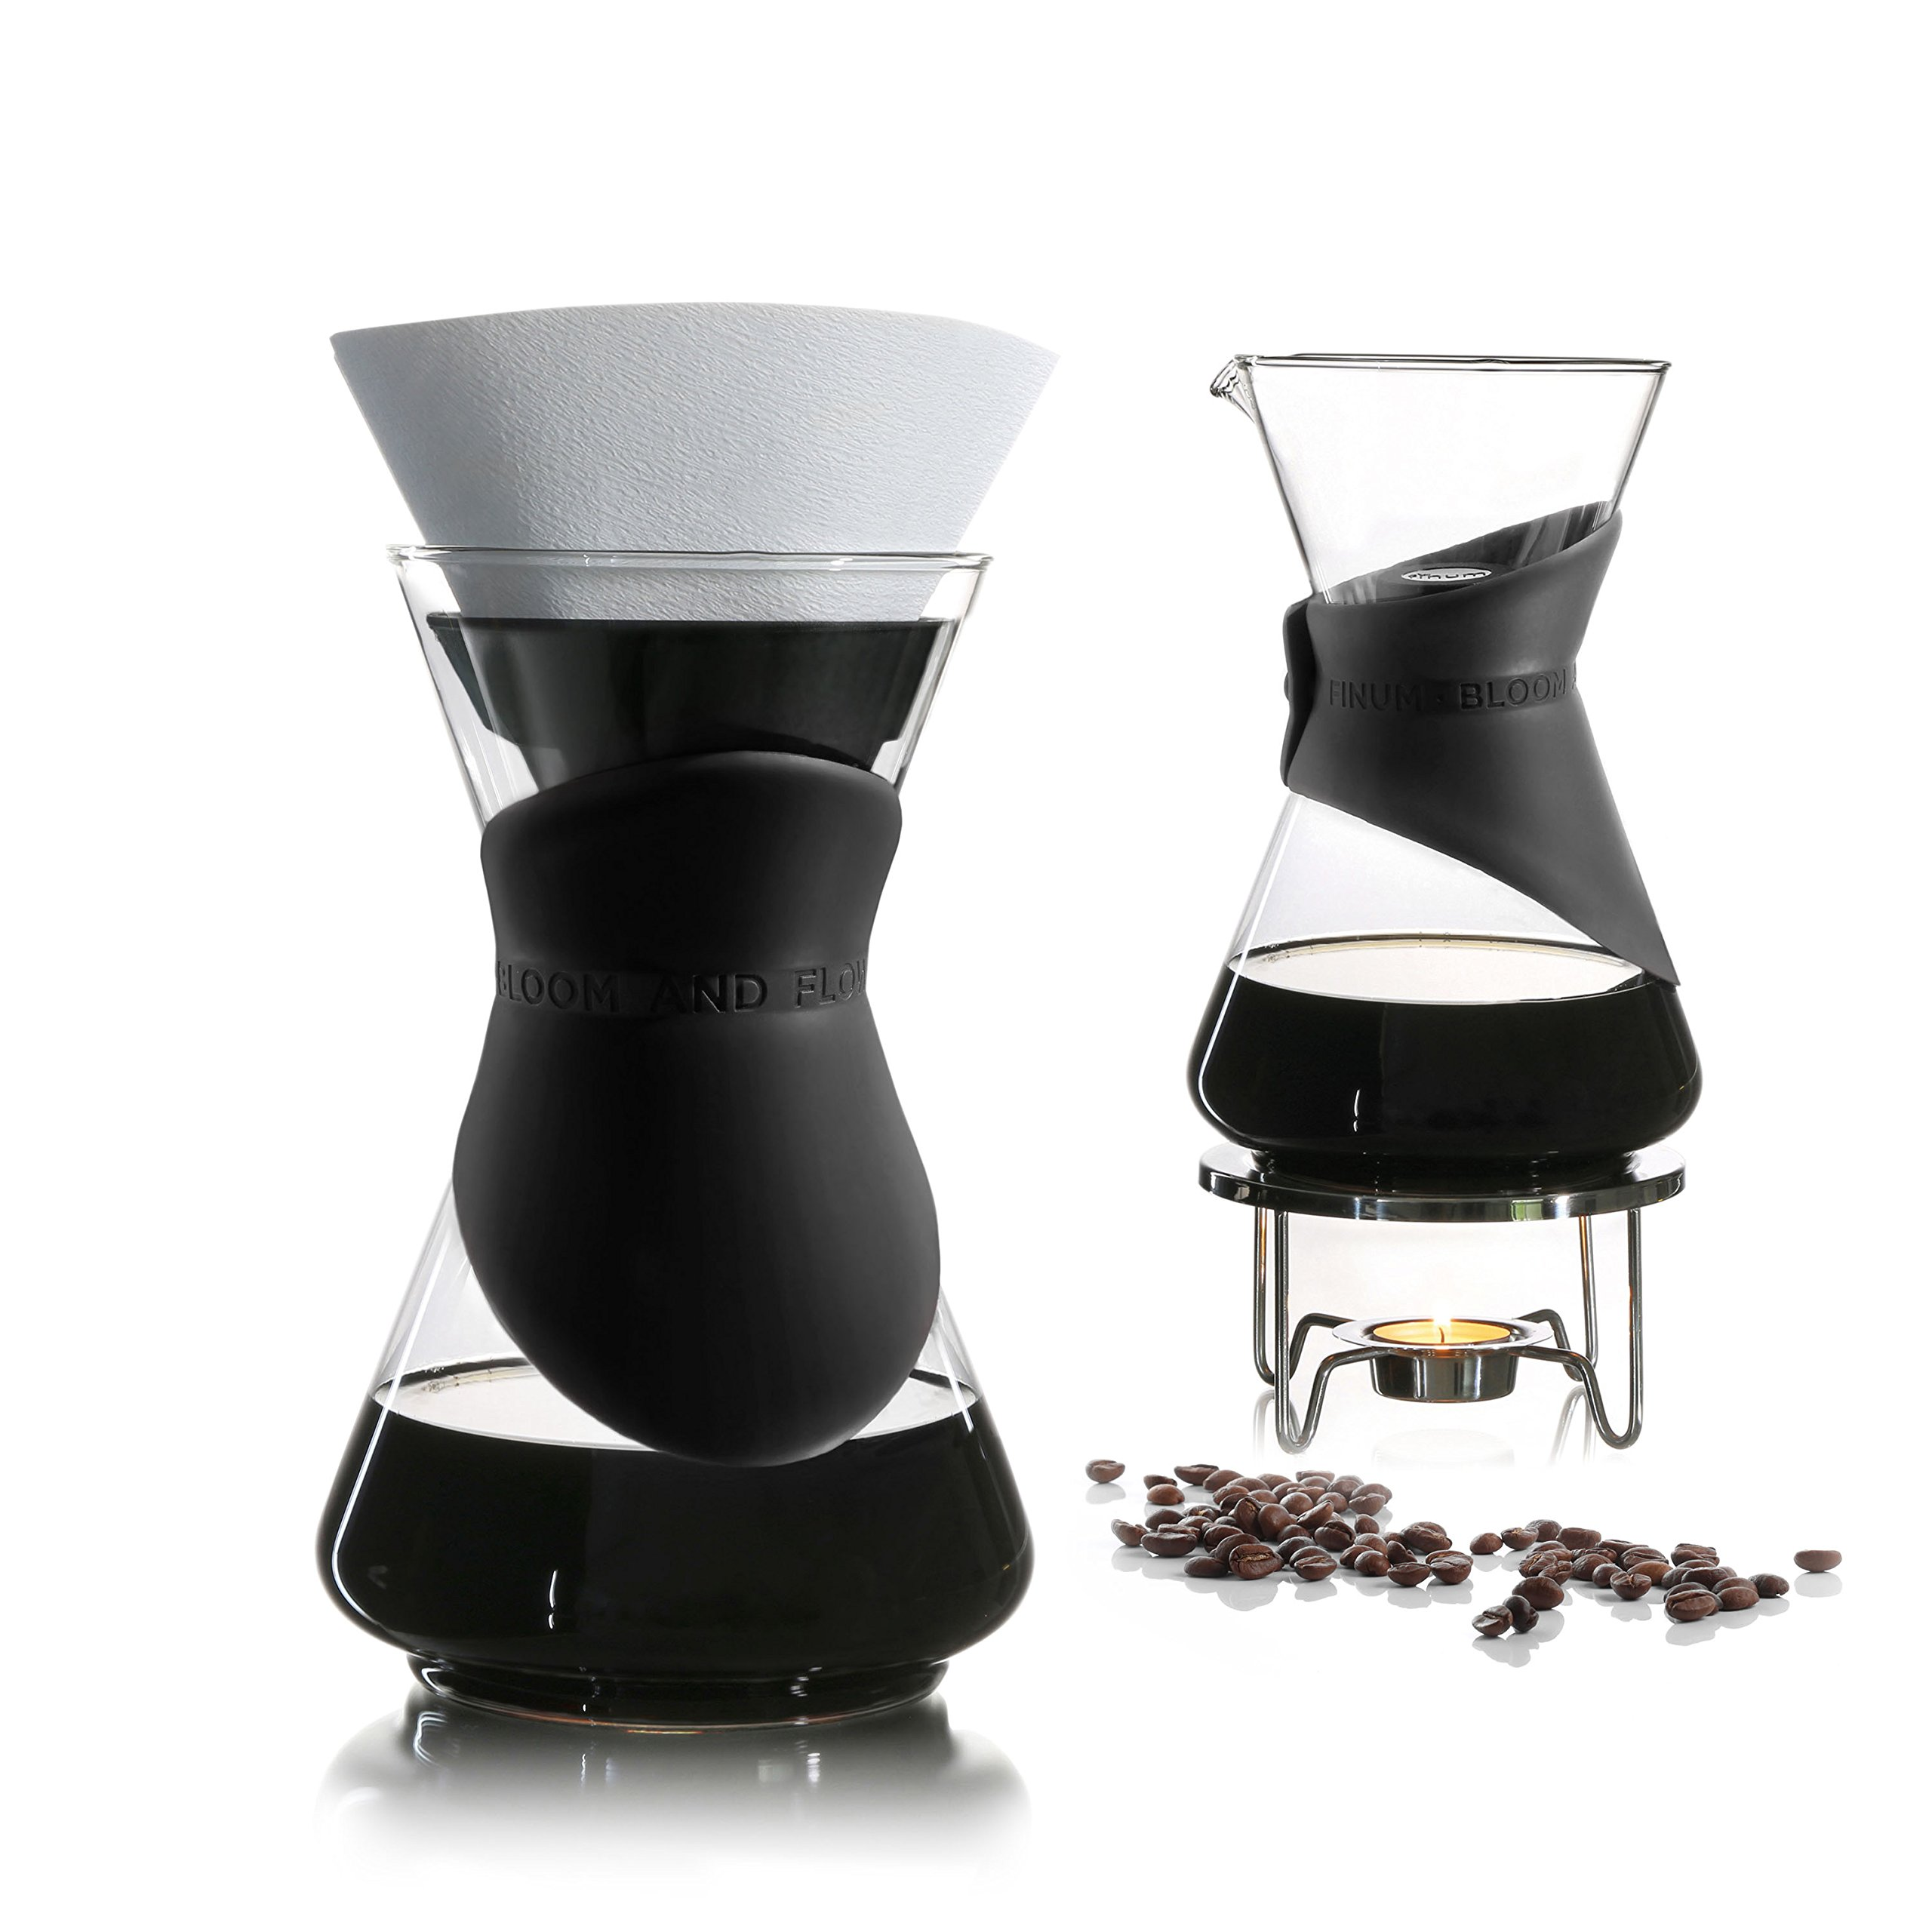 BLOOM AND FLOW- pour over coffee maker (4 Pieces, Black)